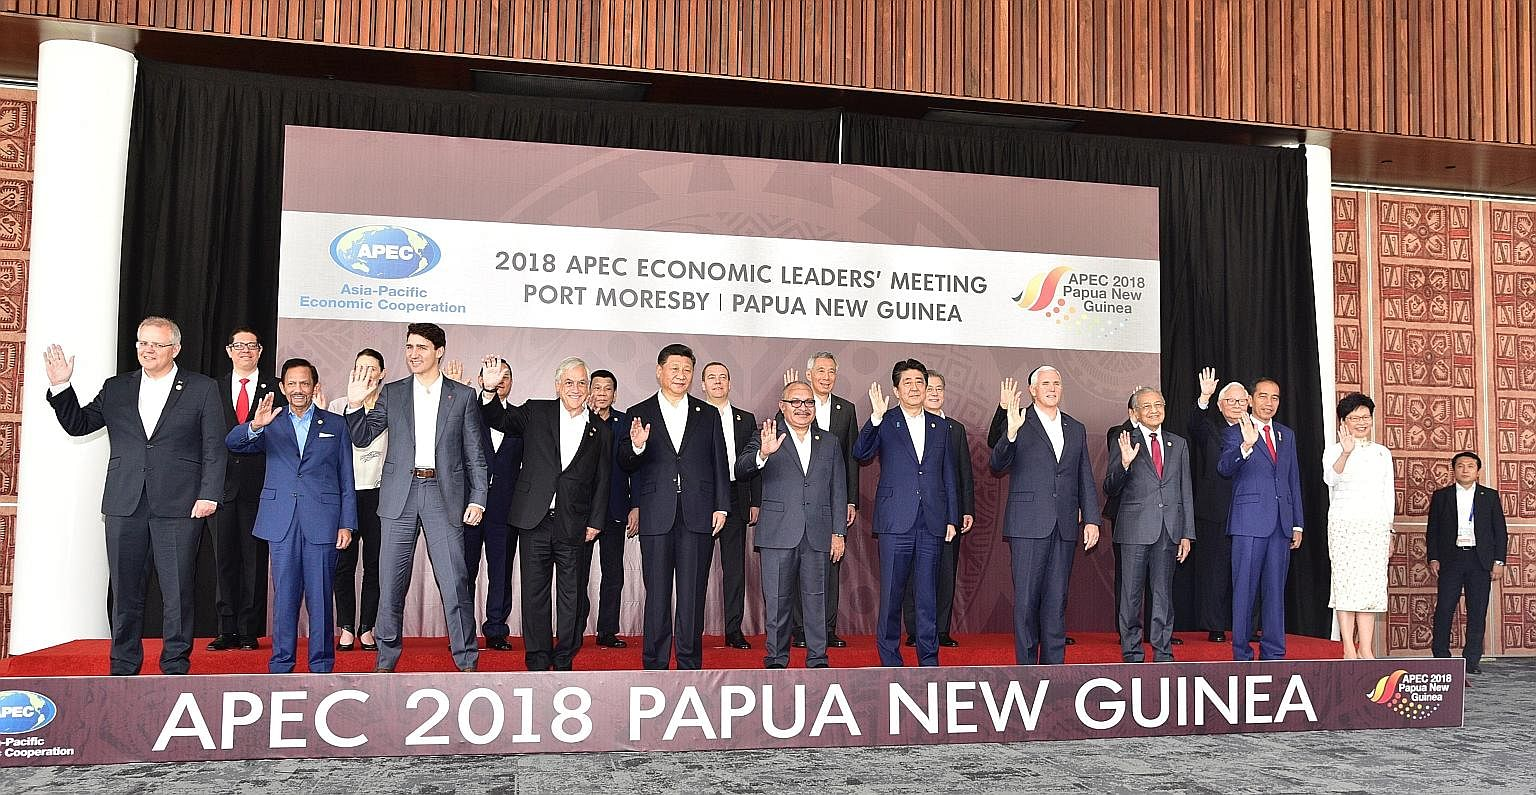 Prime Minister Lee Hsien Loong listening to a presentation at the Apec summit in Port Moresby yesterday. He called on fellow leaders to press on with efforts to form a Free Trade Area of the Asia-Pacific.